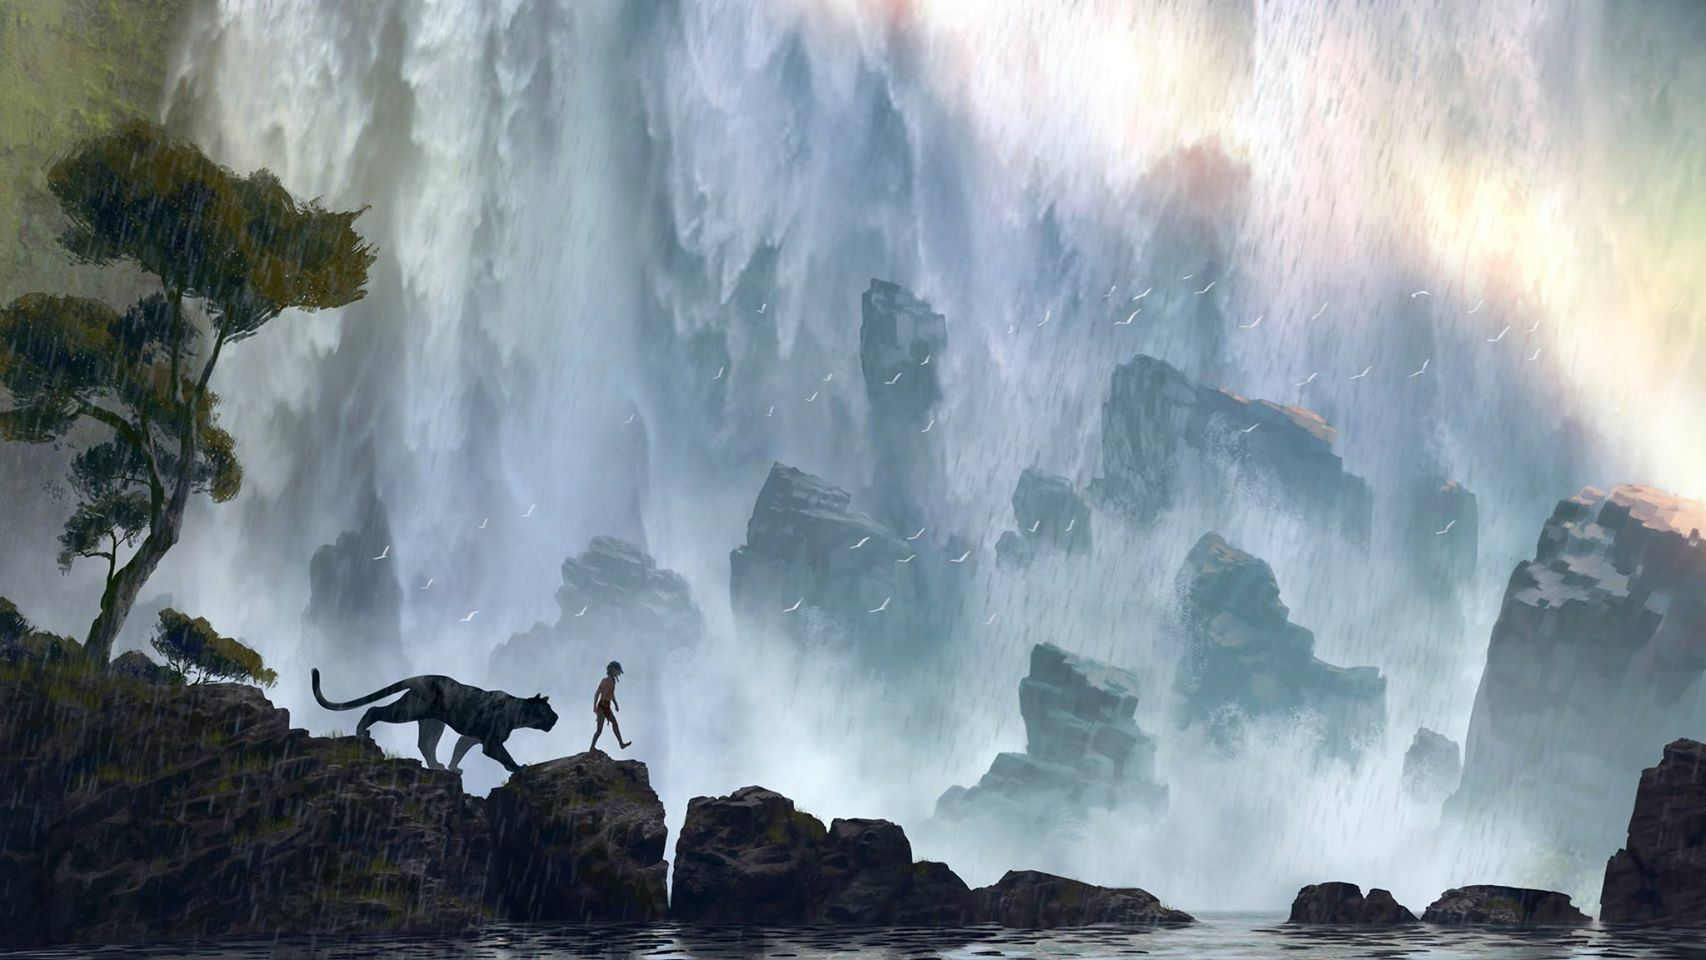 Jungle book movie wallpaper